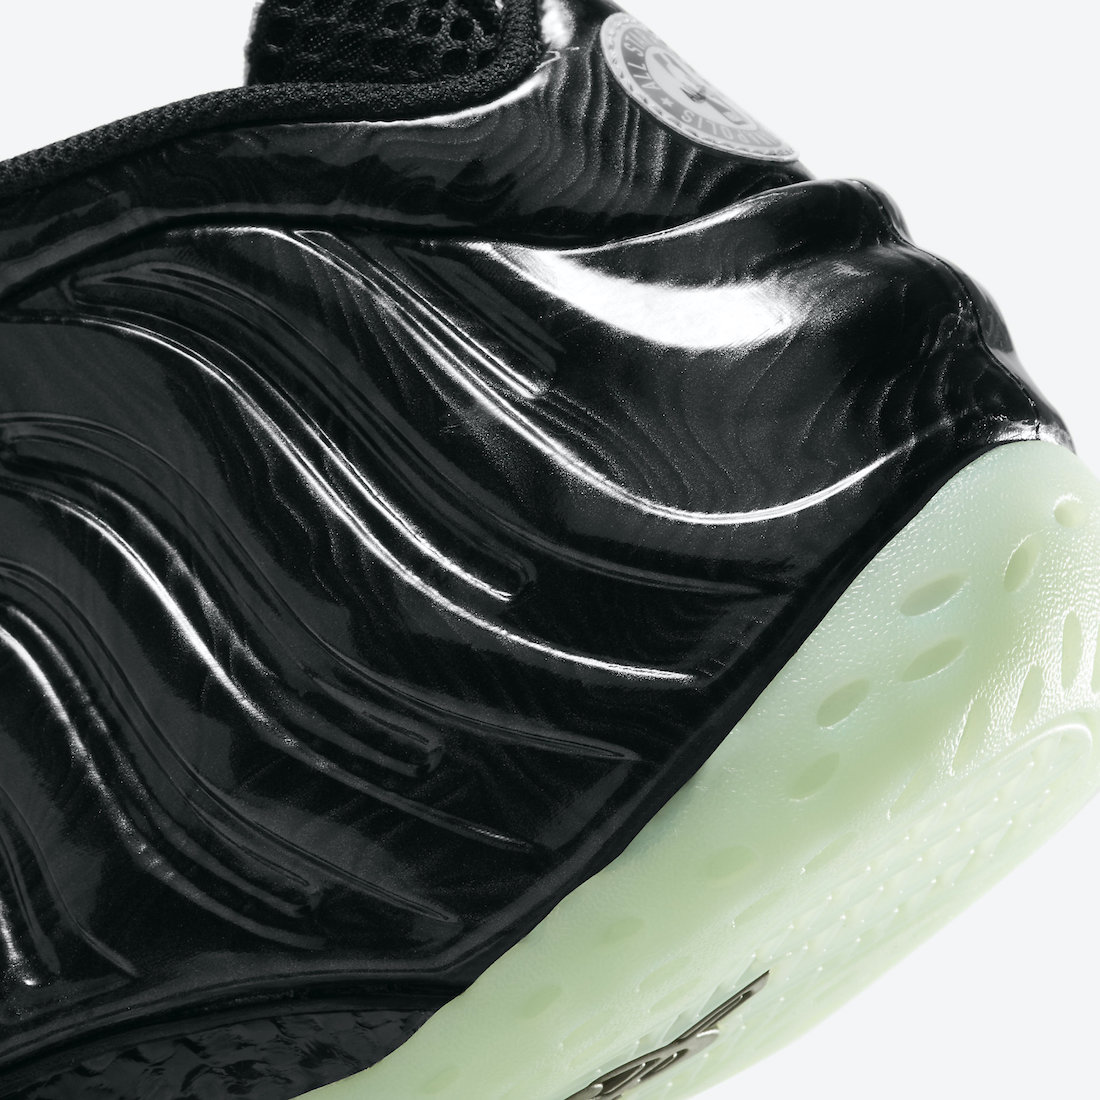 Nike-Air-Foamposite-One-All-Star-2021-CV1766-001-Release-Date-Price-7